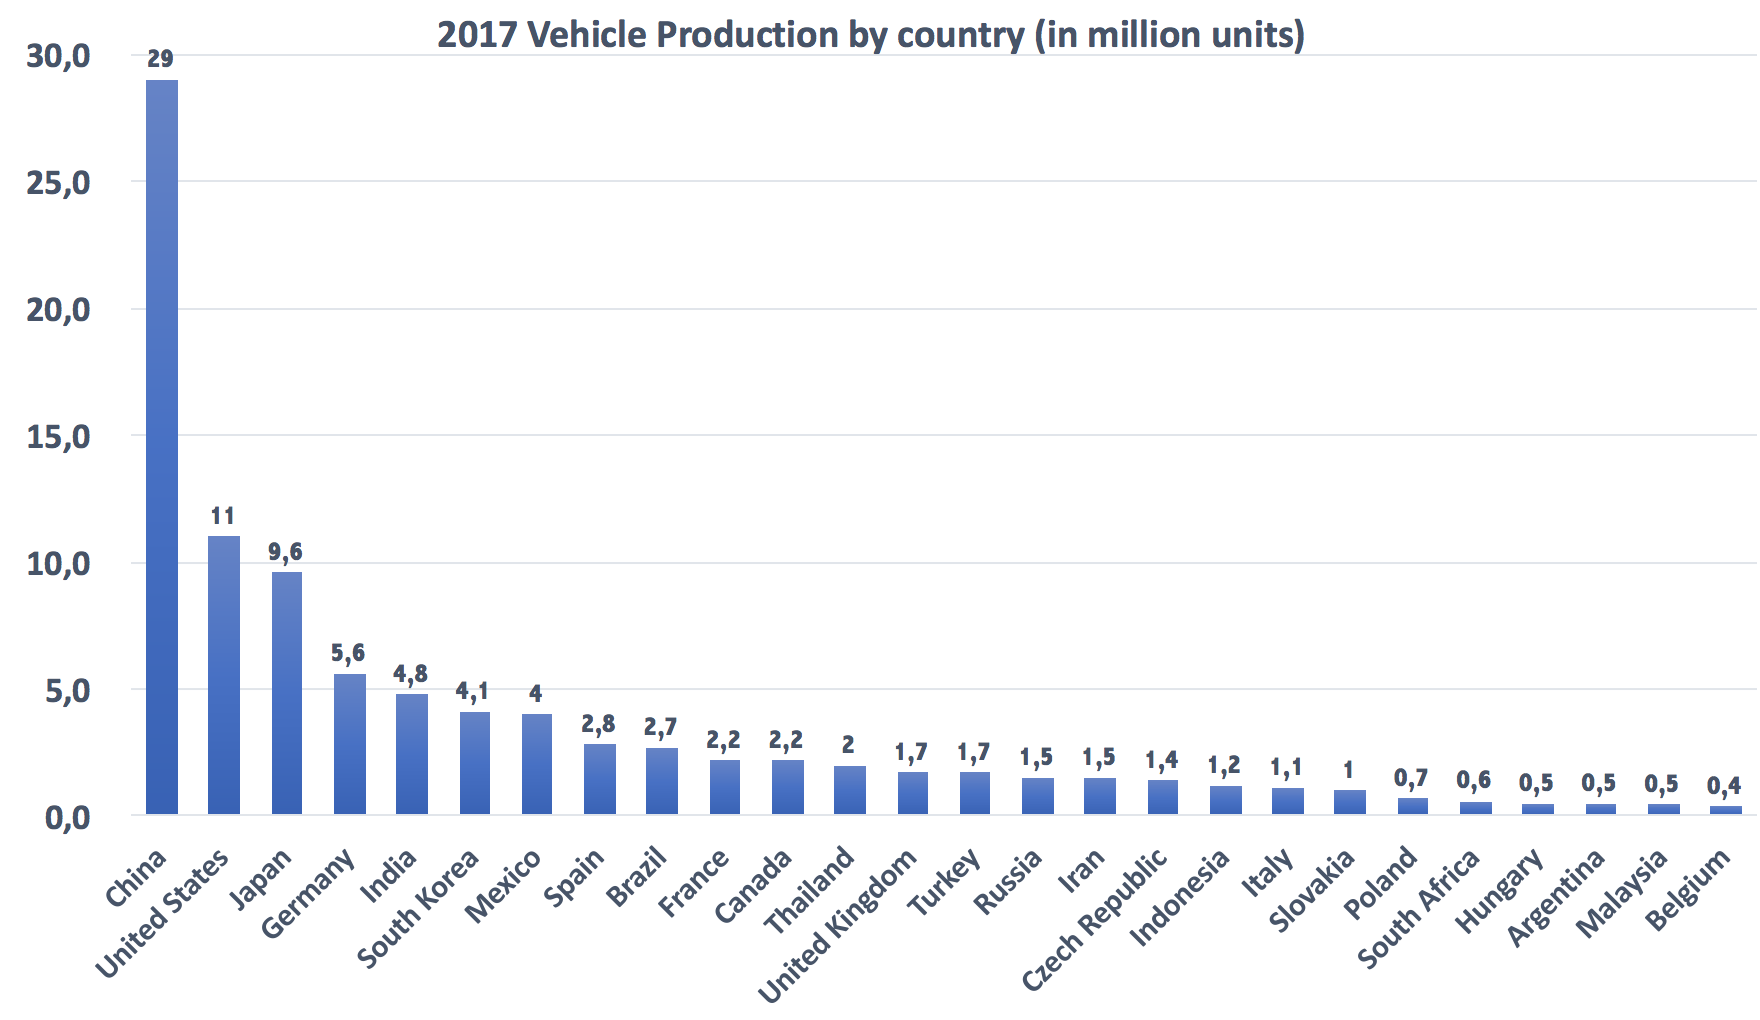 2017 Vehicle Production by country